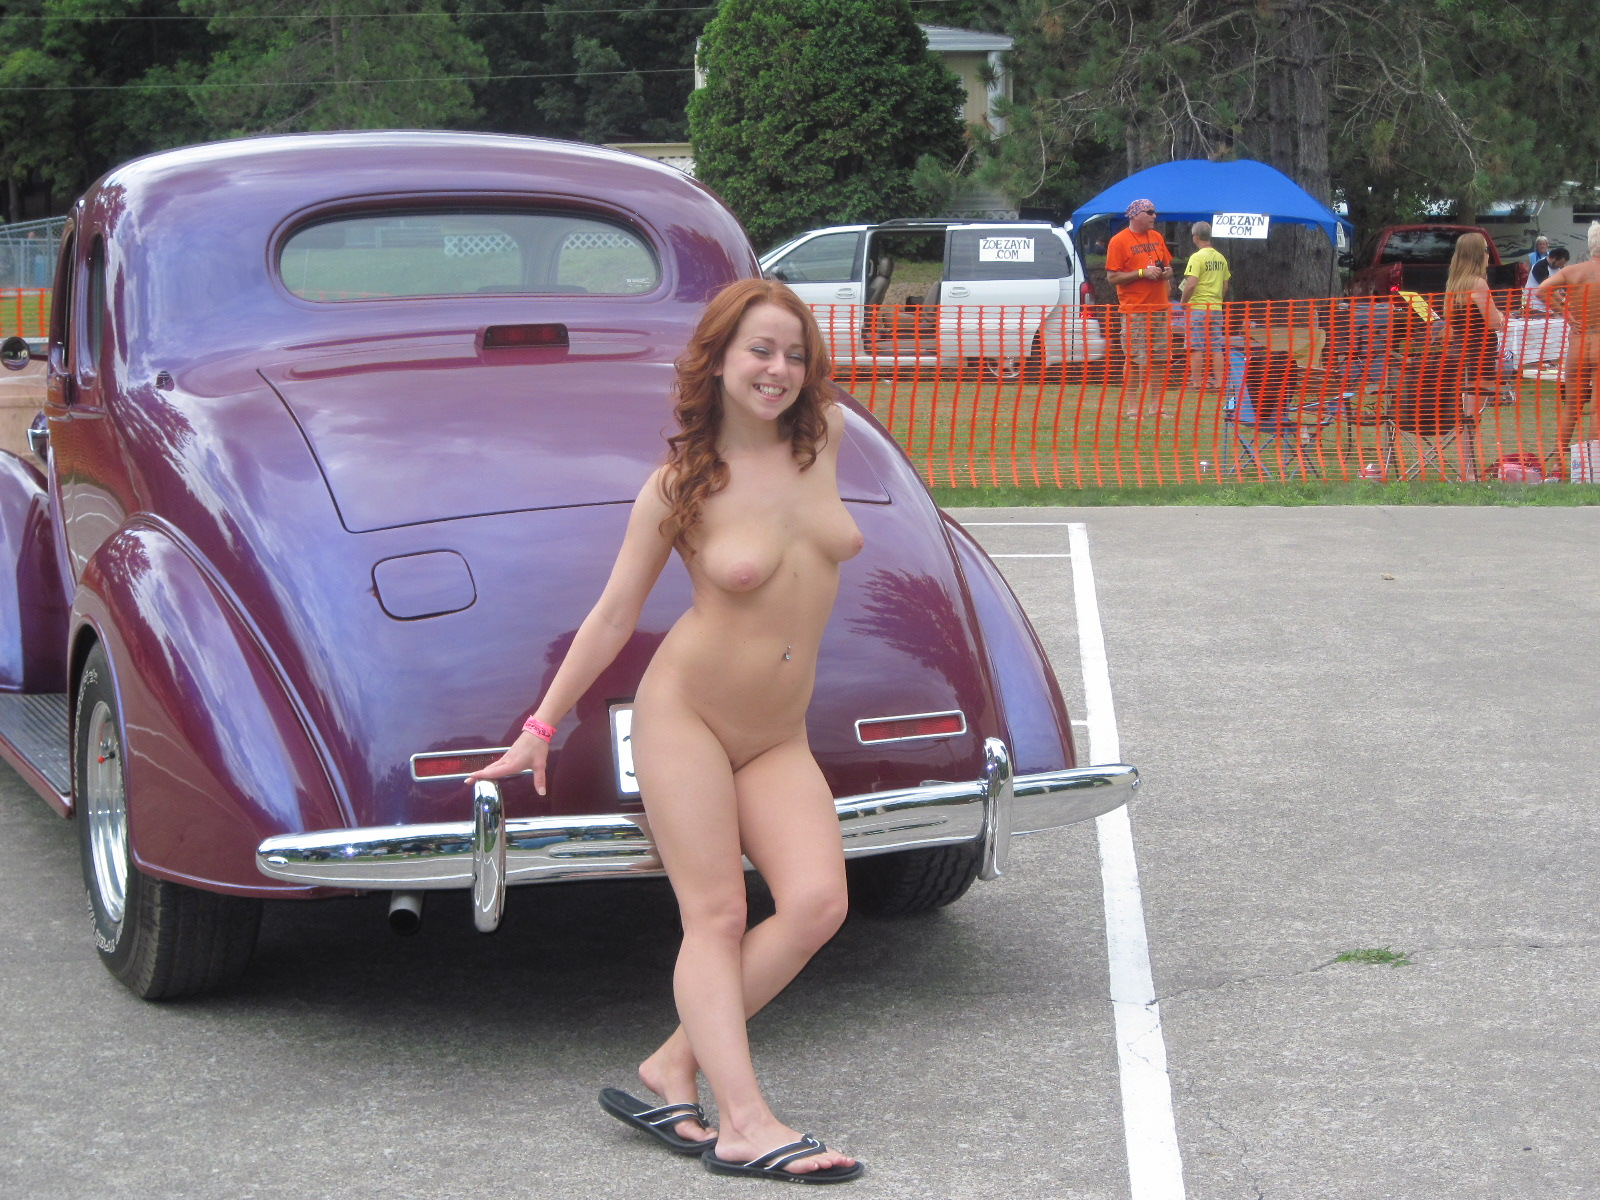 woman from hot rod movie naked